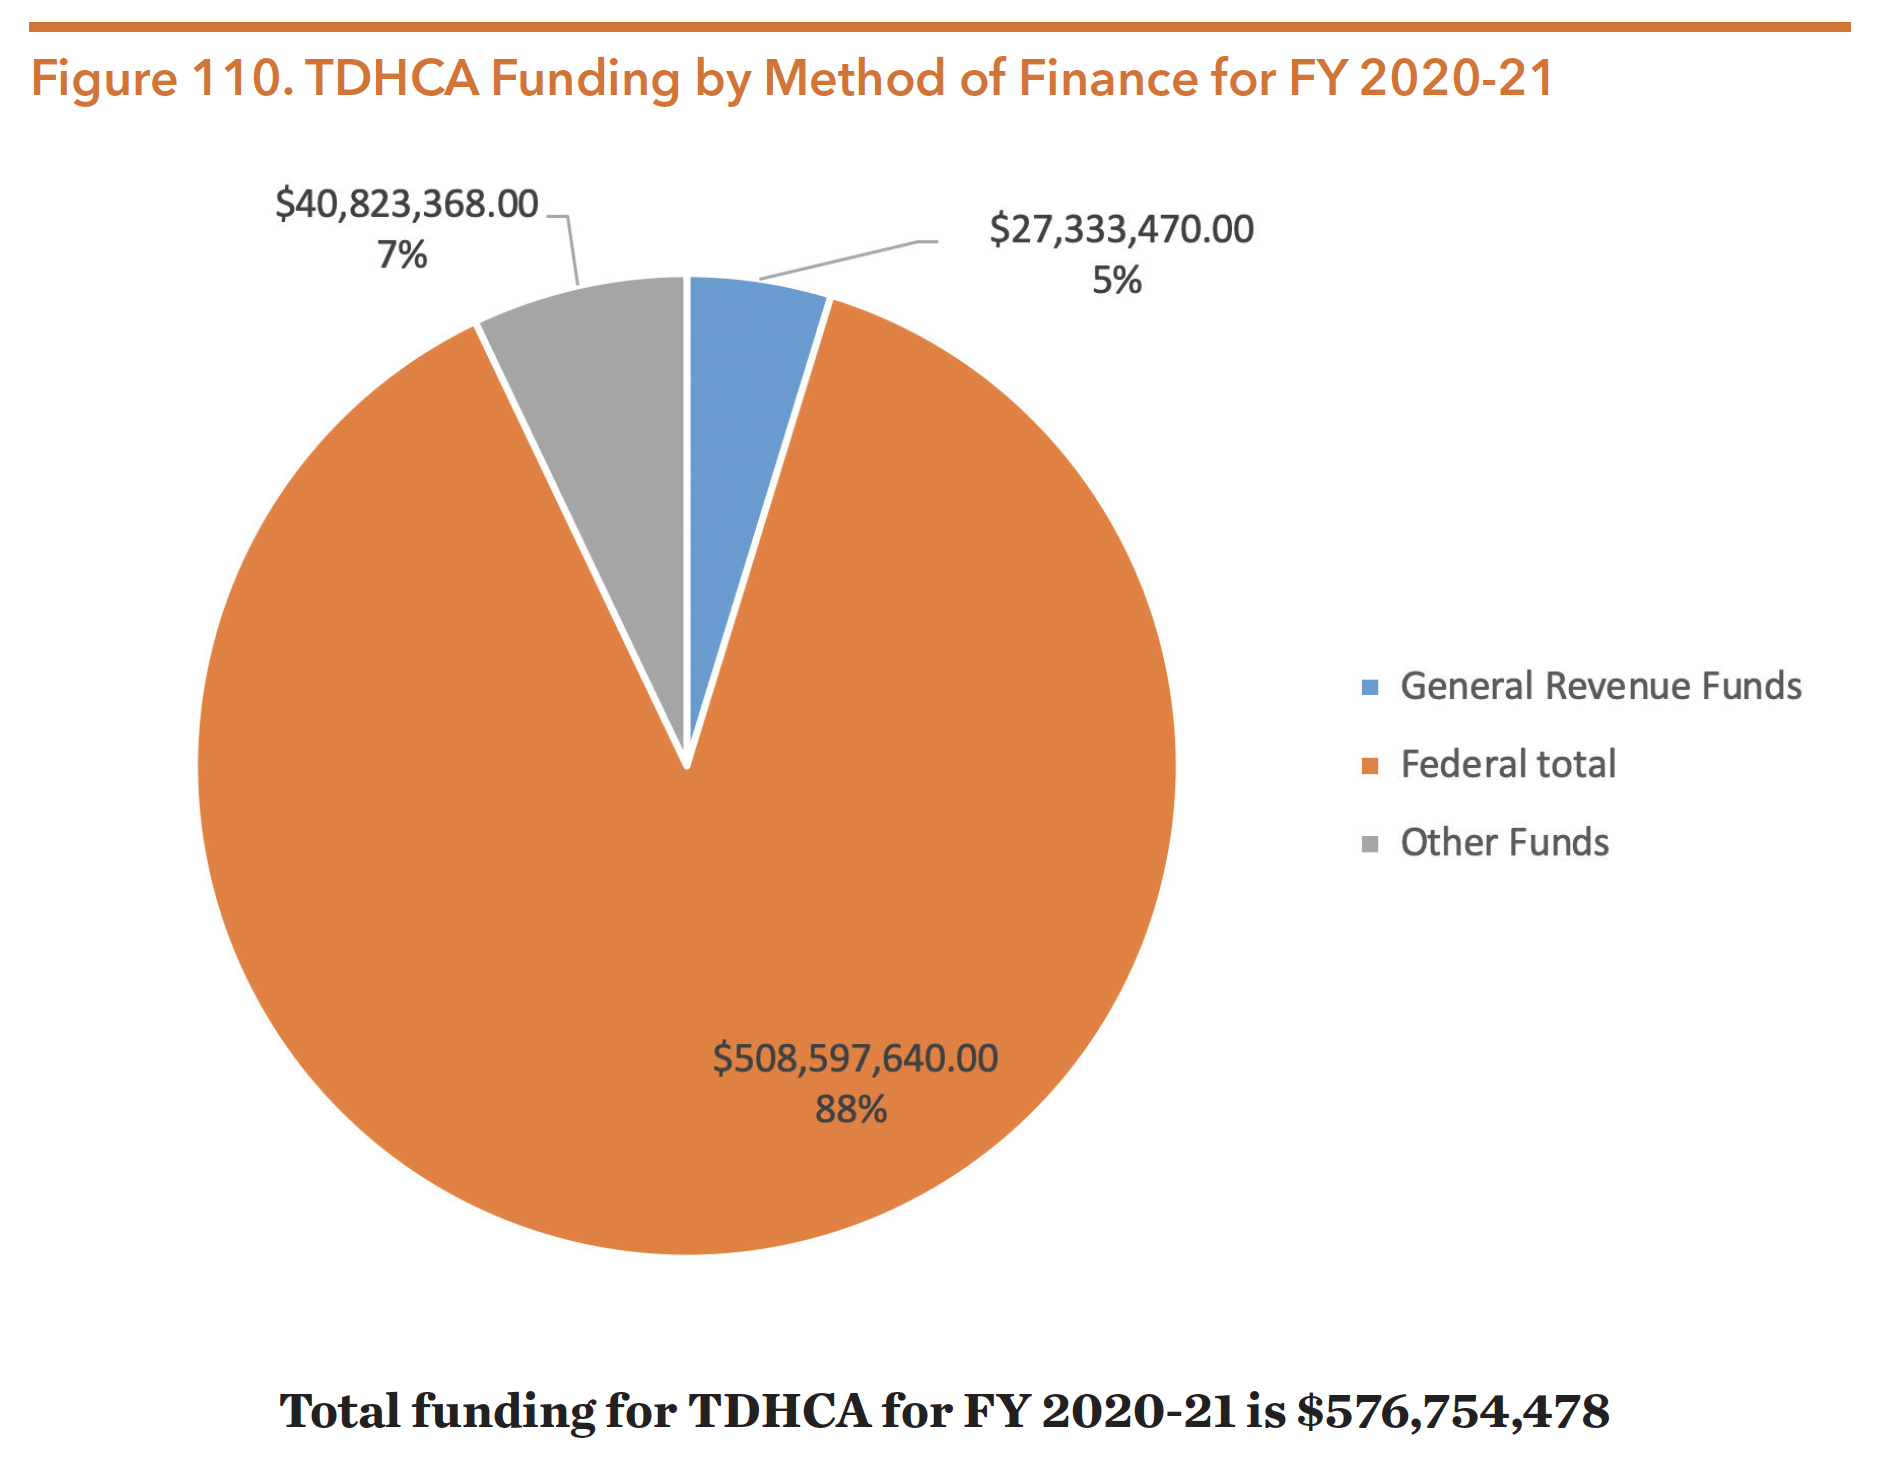 Figure 110. TDHCA Funding by Method of Finance for FY 2020-21